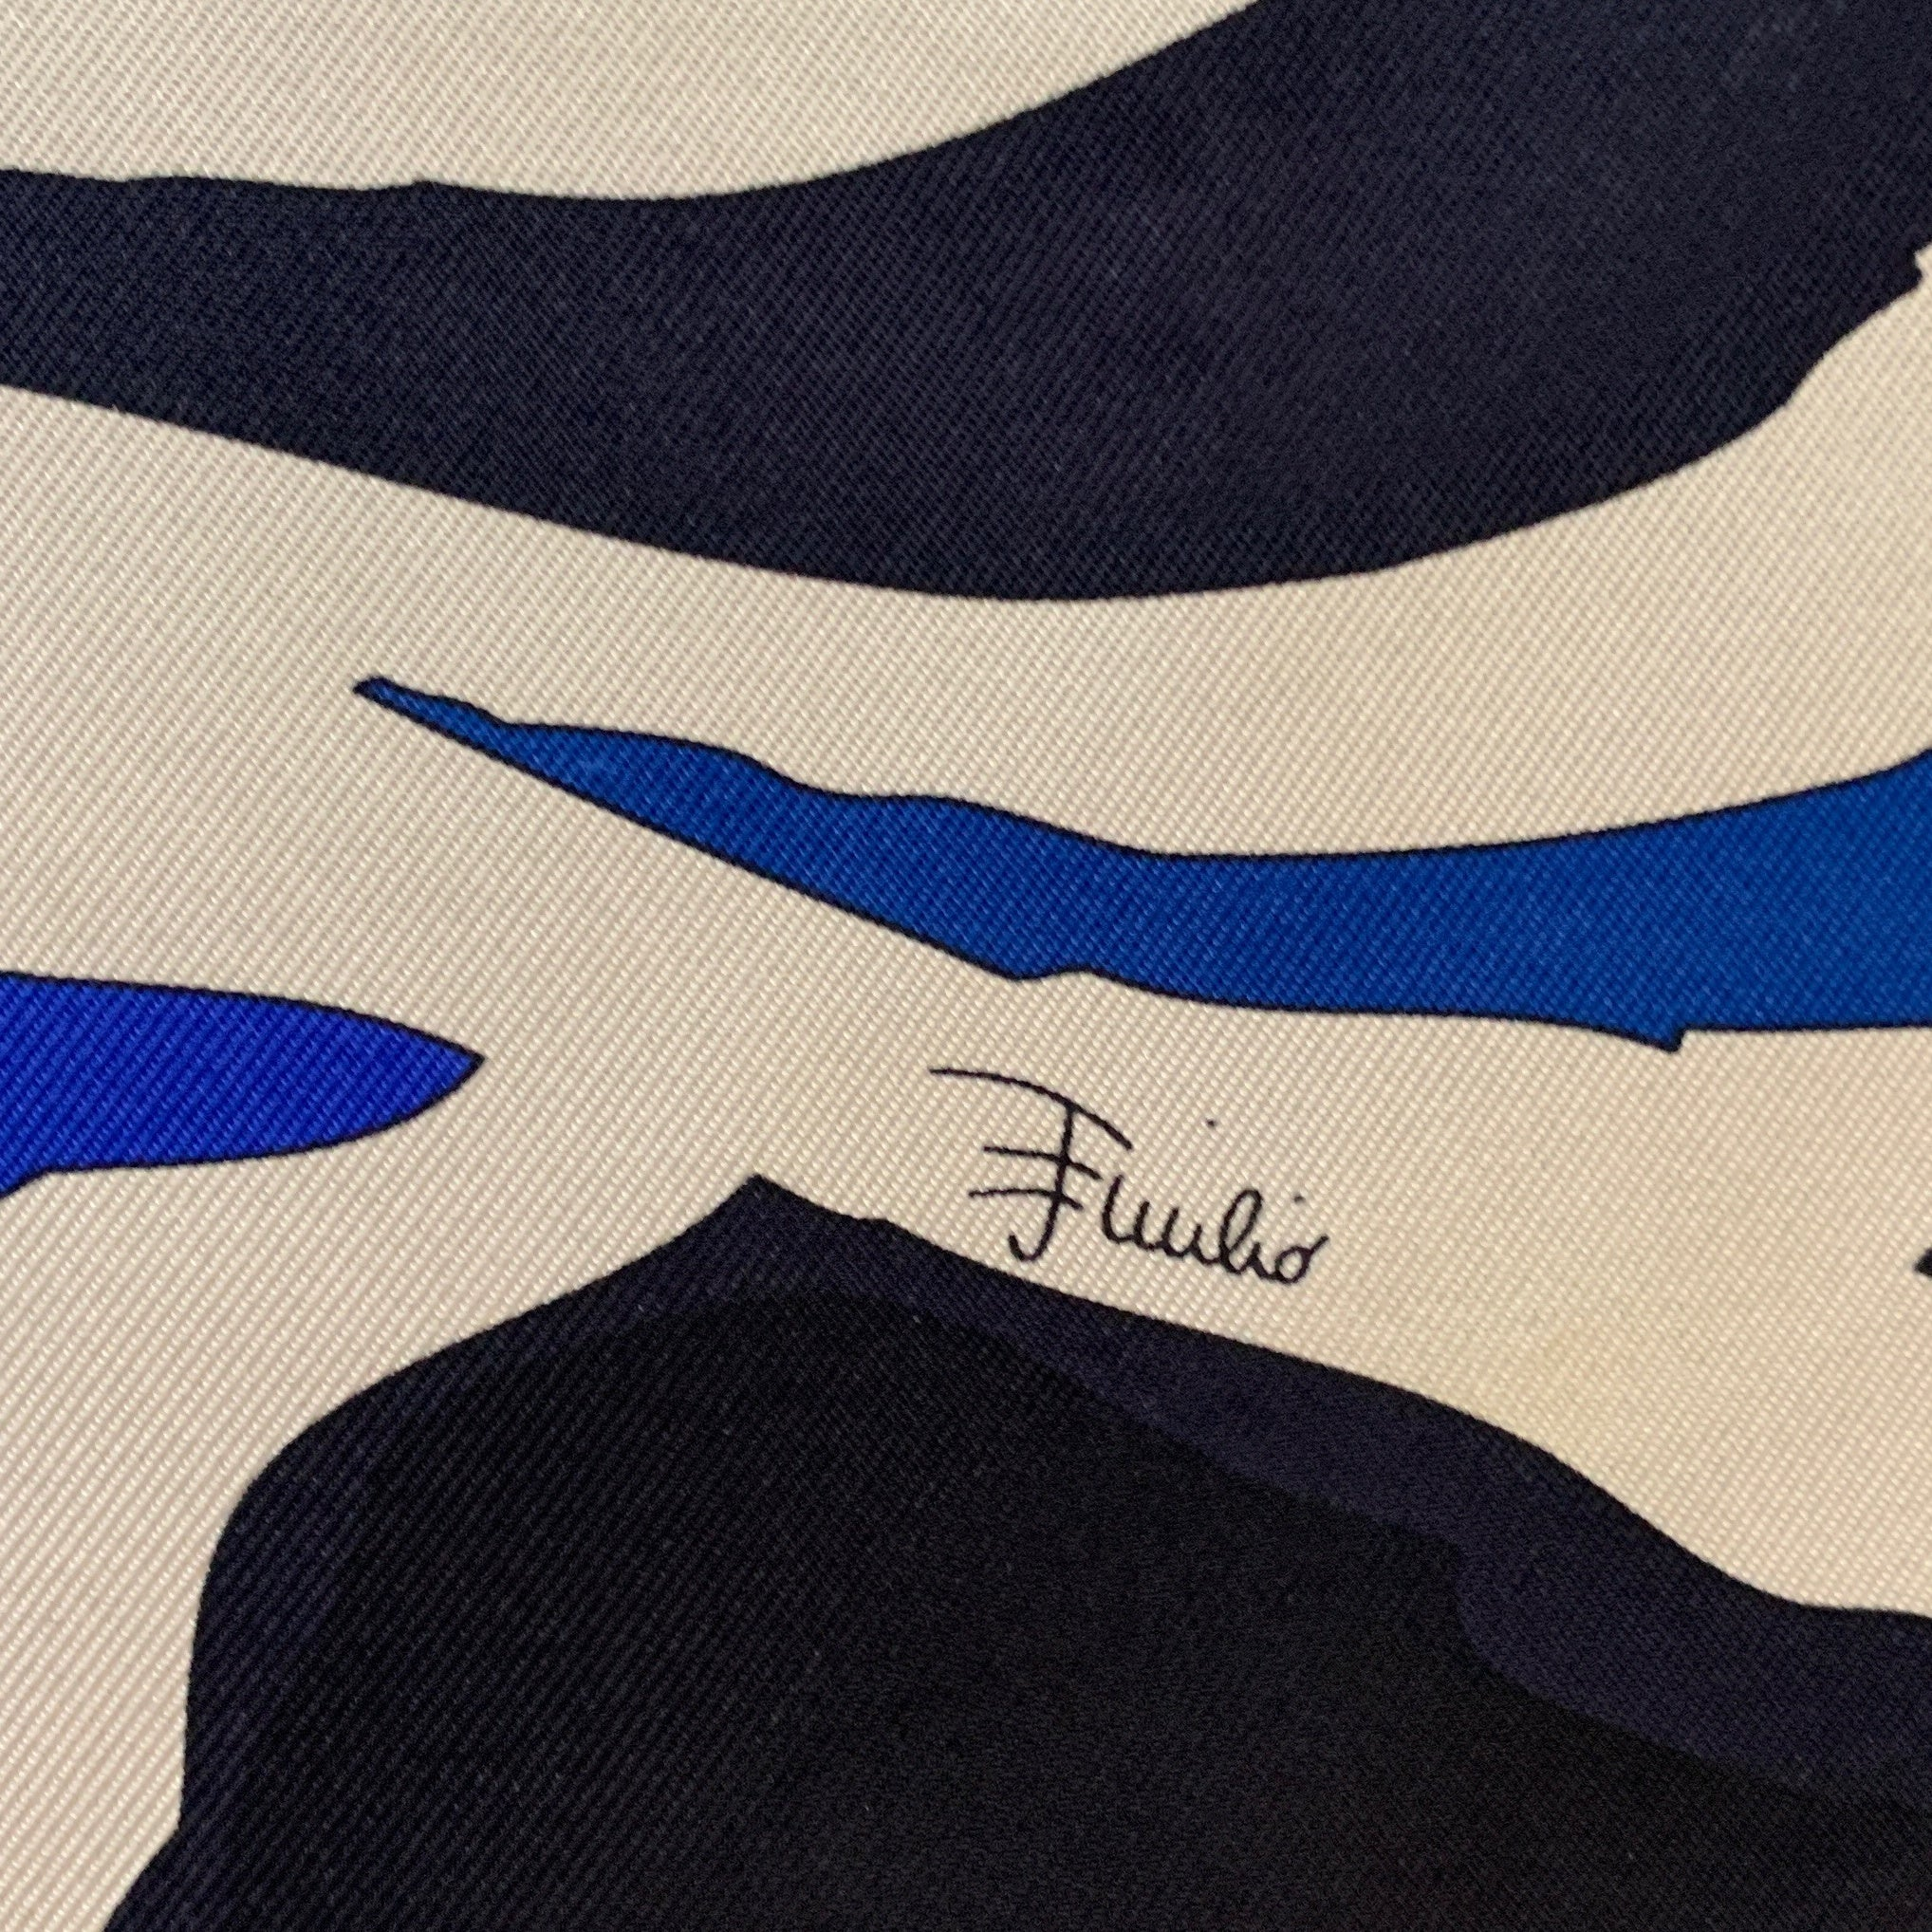 Authentic EMILIO PUCCI Vintage Abstract Blues Scarf Face Mask exclusively at VintageLuxeUp.com